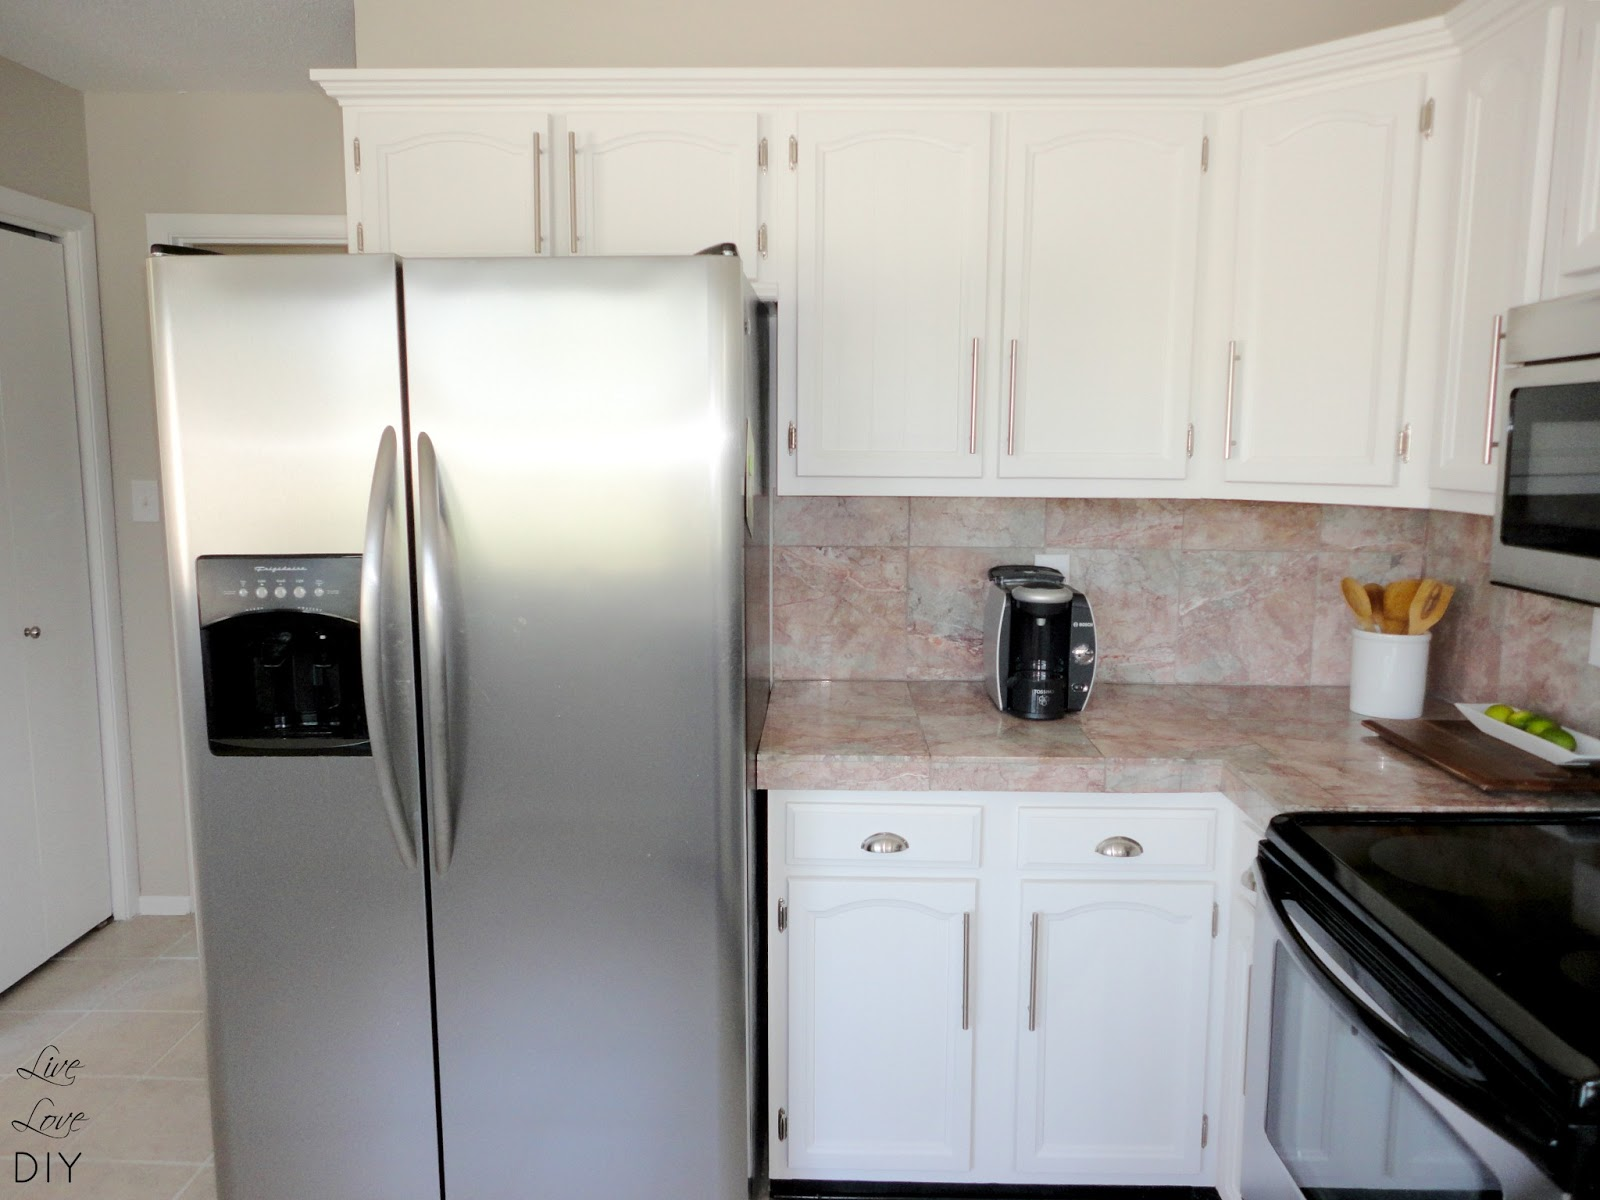 painted white cabinetsLiveLoveDIY How To Paint Kitchen Cabinets in 10 Easy Steps